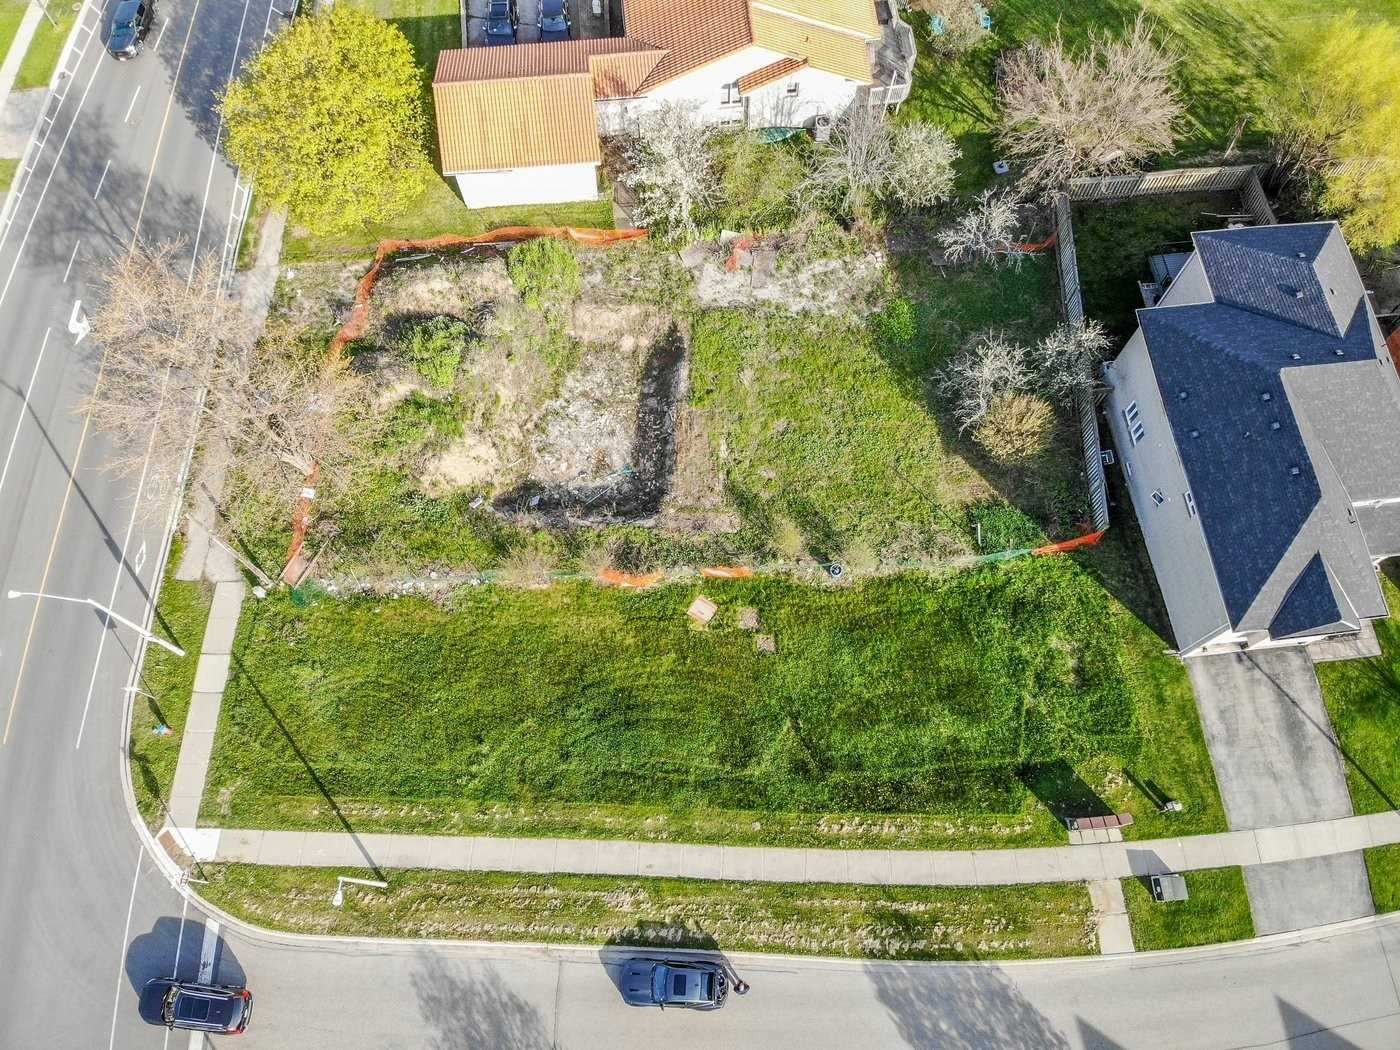 Perfect Building Lot In A High Demand Area. Build Your Own Dream Home In Sought After Oakville. Close To All Amenites, Shopping, Restaurants, Transit & Major Highways. Dont Miss Out On This Rare Opportunity.